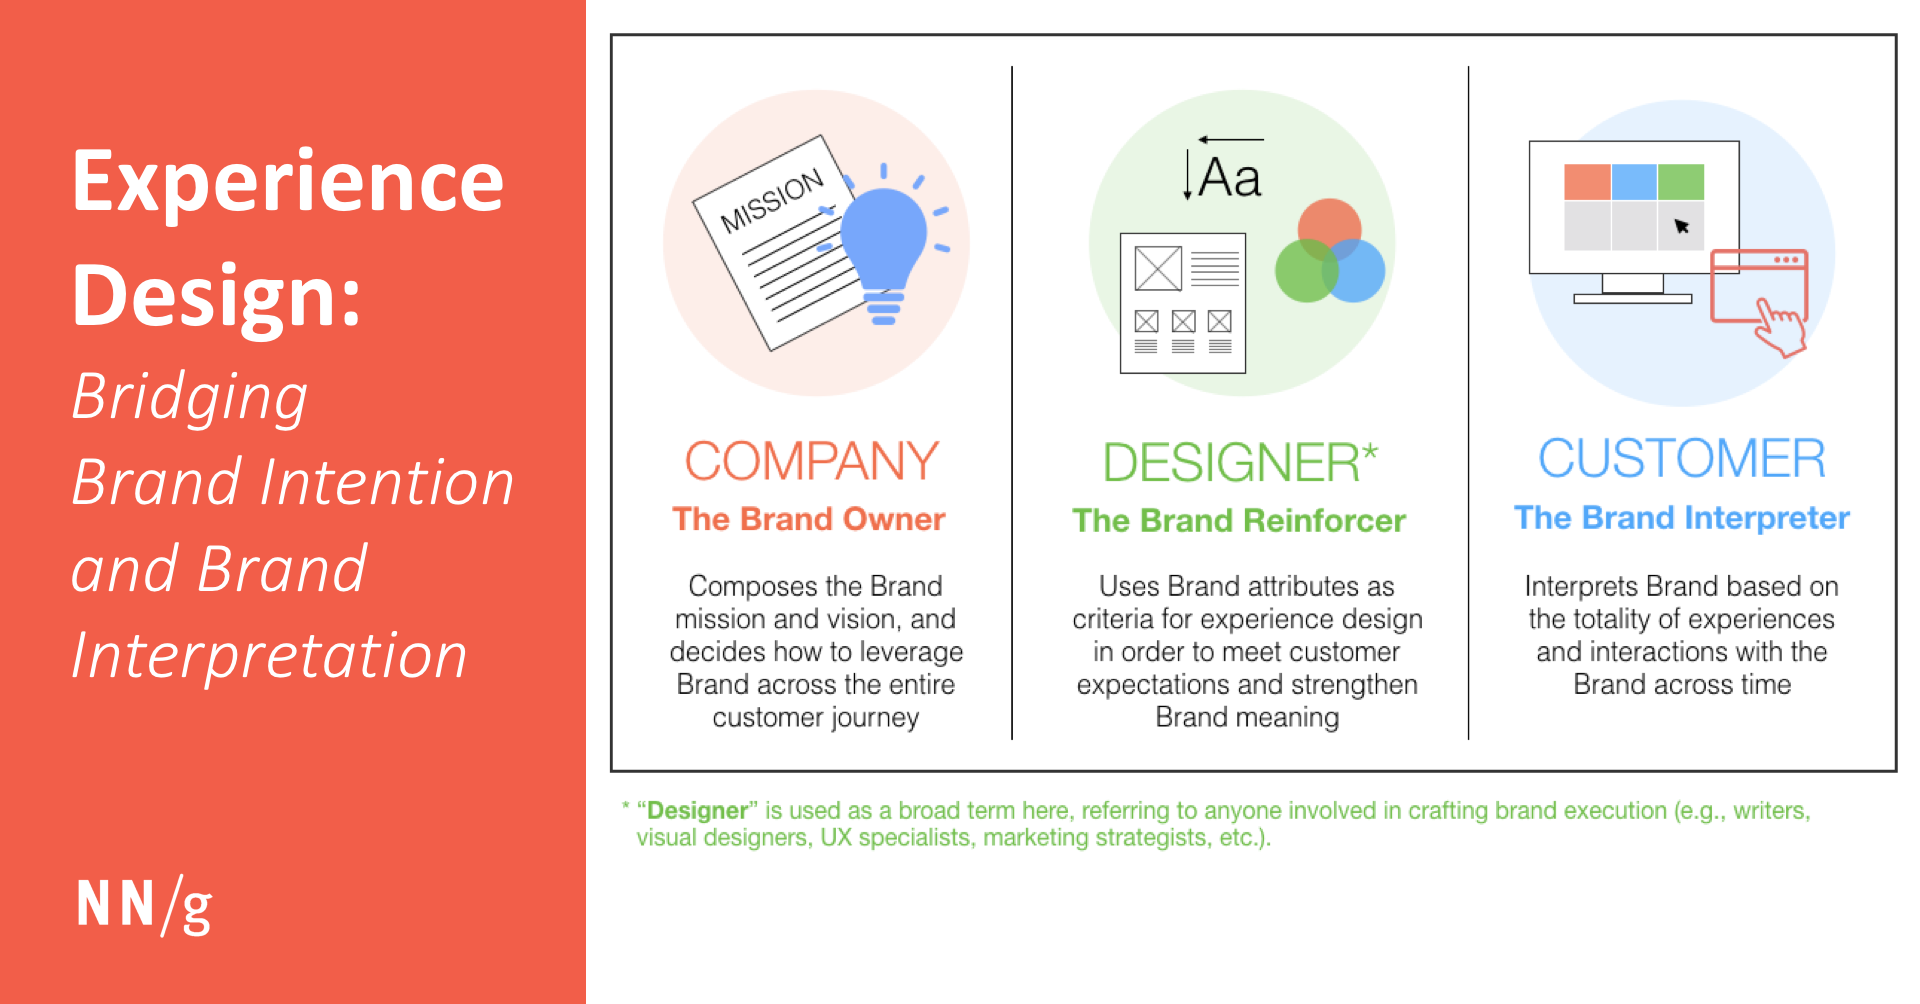 Experience Design: Bridging Brand Intention and Brand